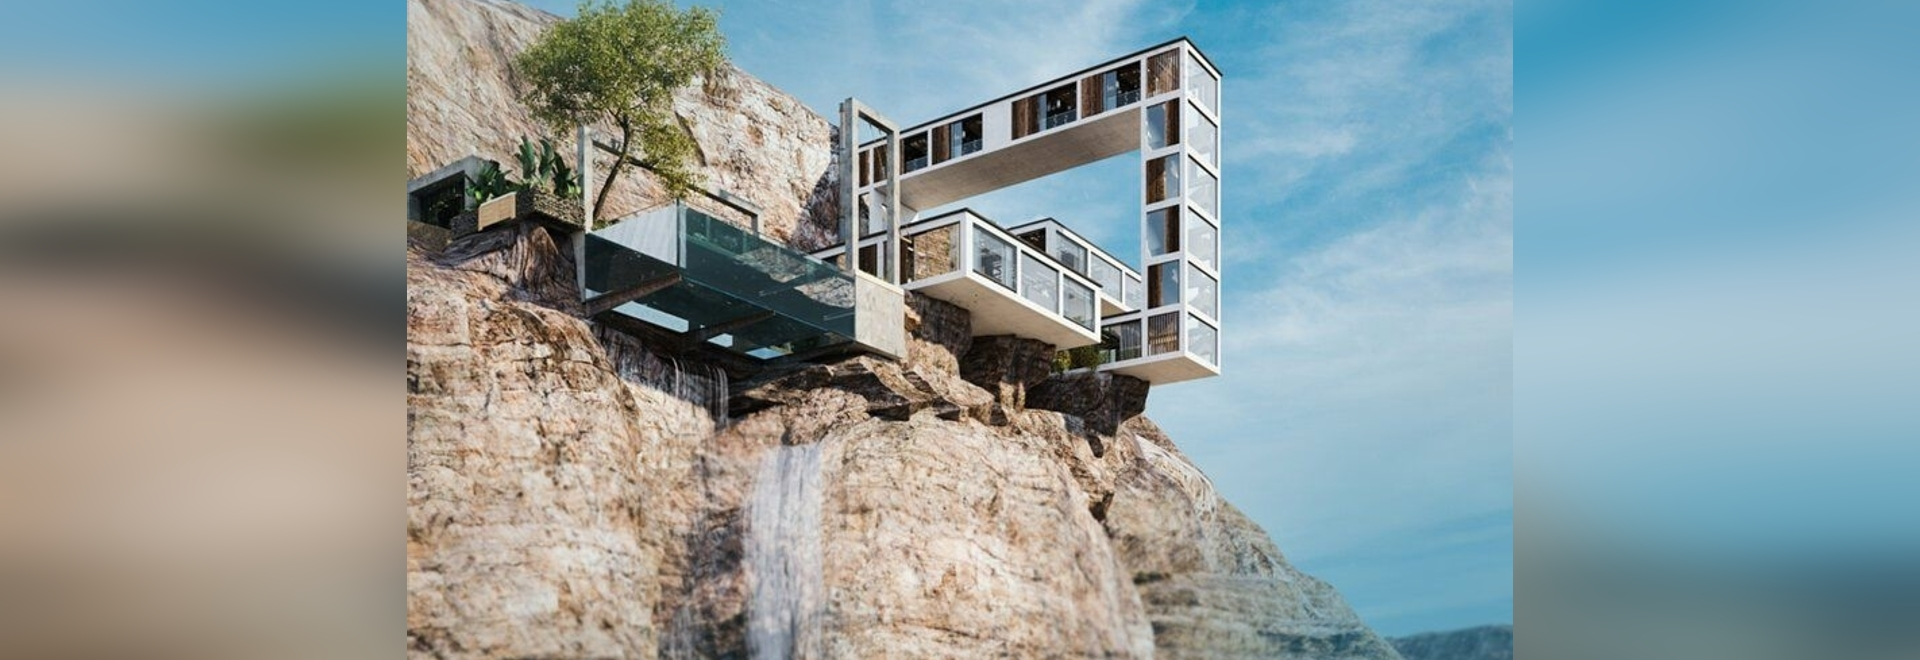 Milad Eshtiyaghi's cantilevering 'mountain house' meanders over a cliff in three dimensions